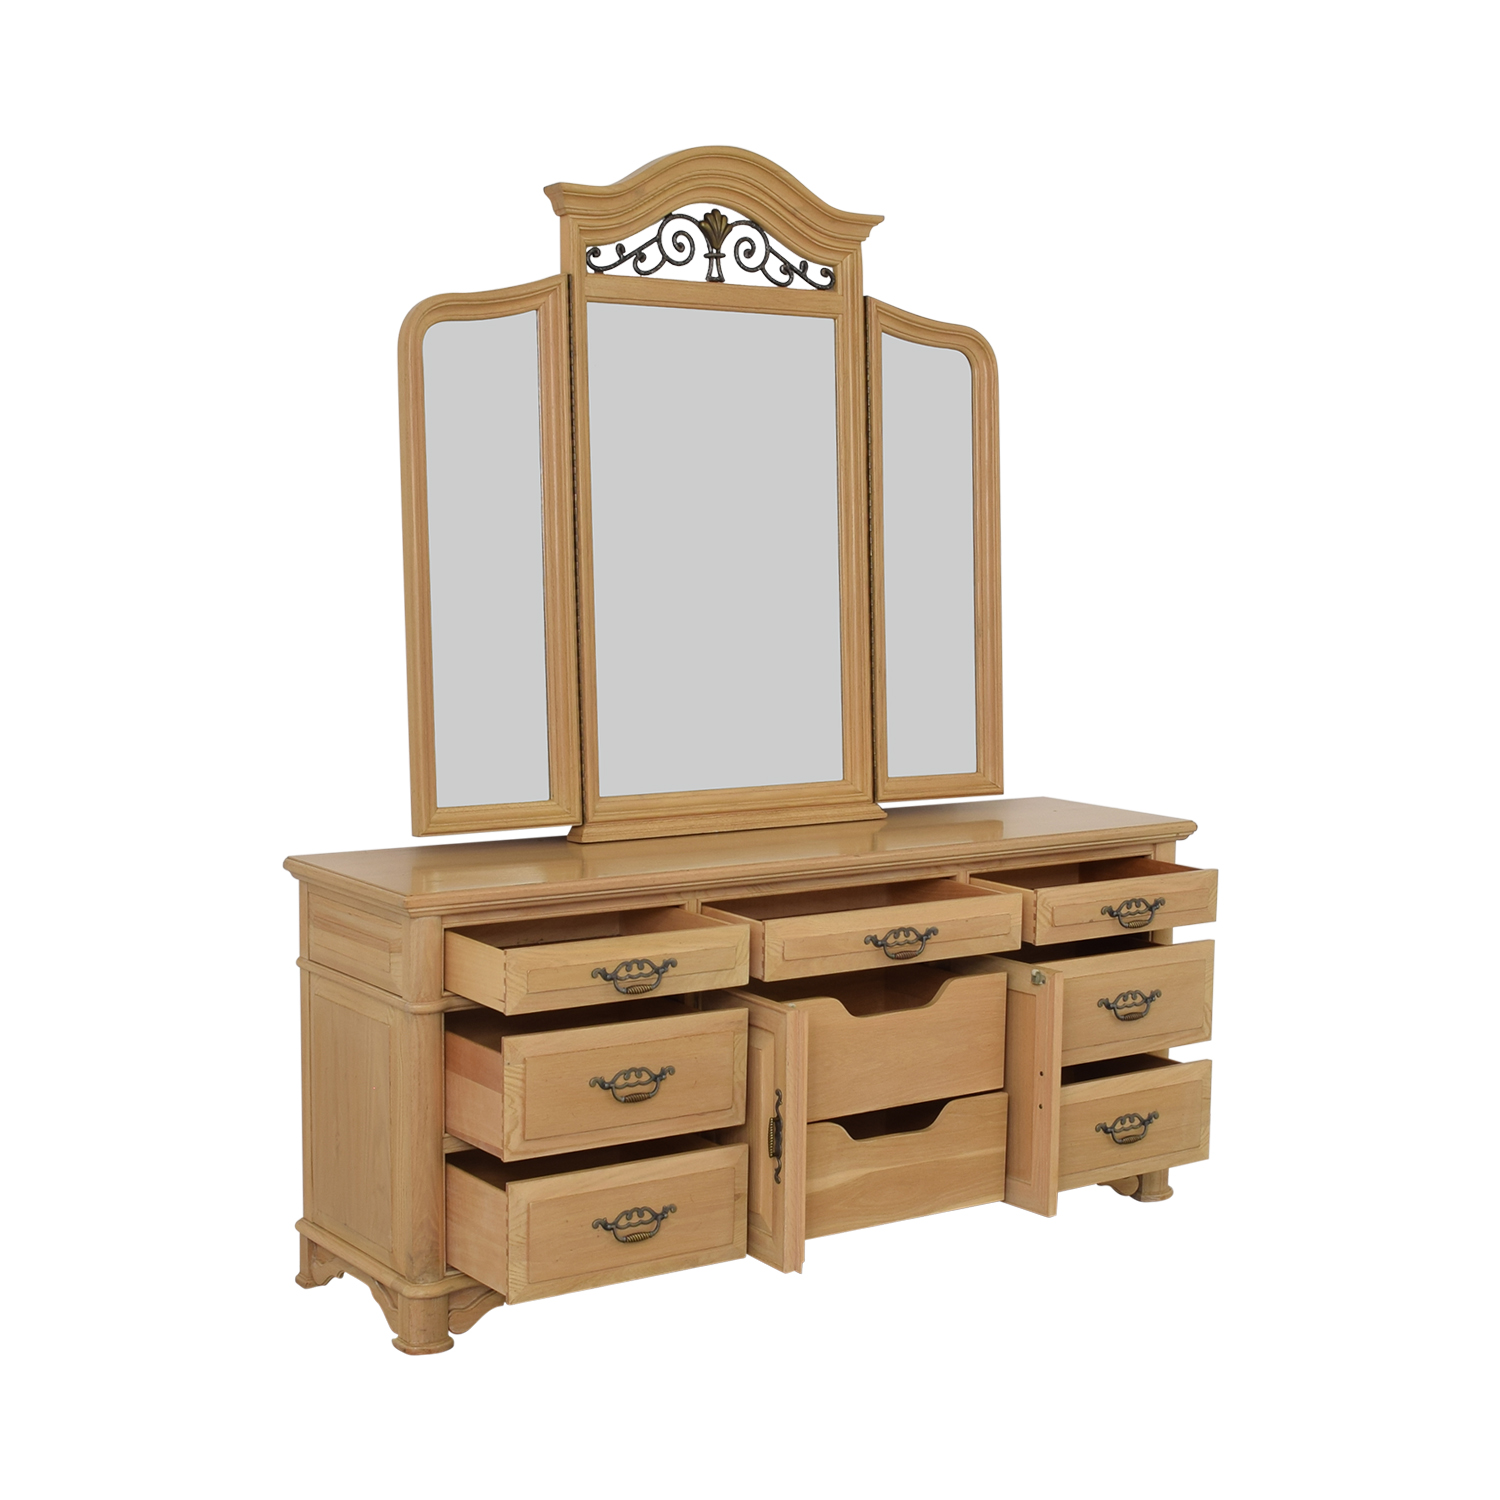 Thomasville Thomasville Triple Dresser with Mirror coupon